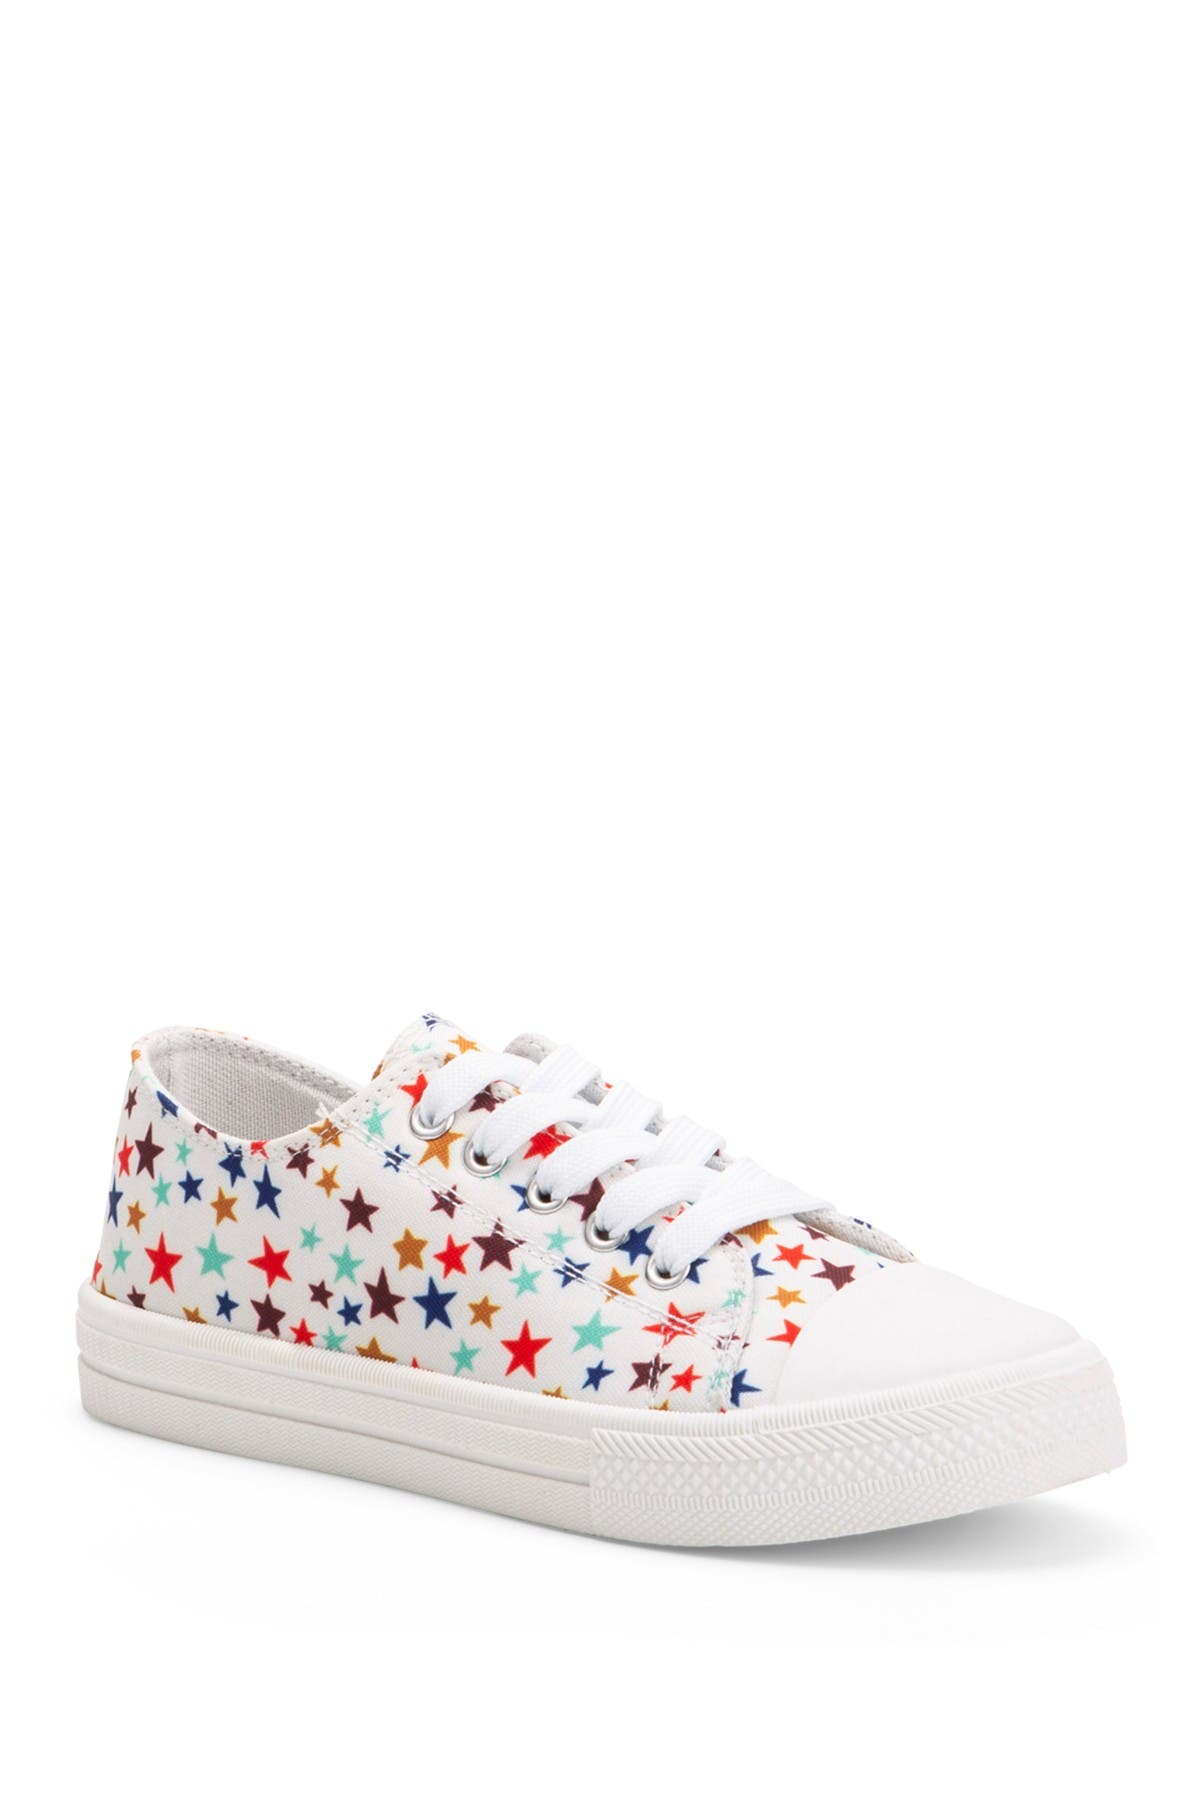 Olivia Miller Girls White and Iridescent Sneakers Hook and Loop Closure Shoes